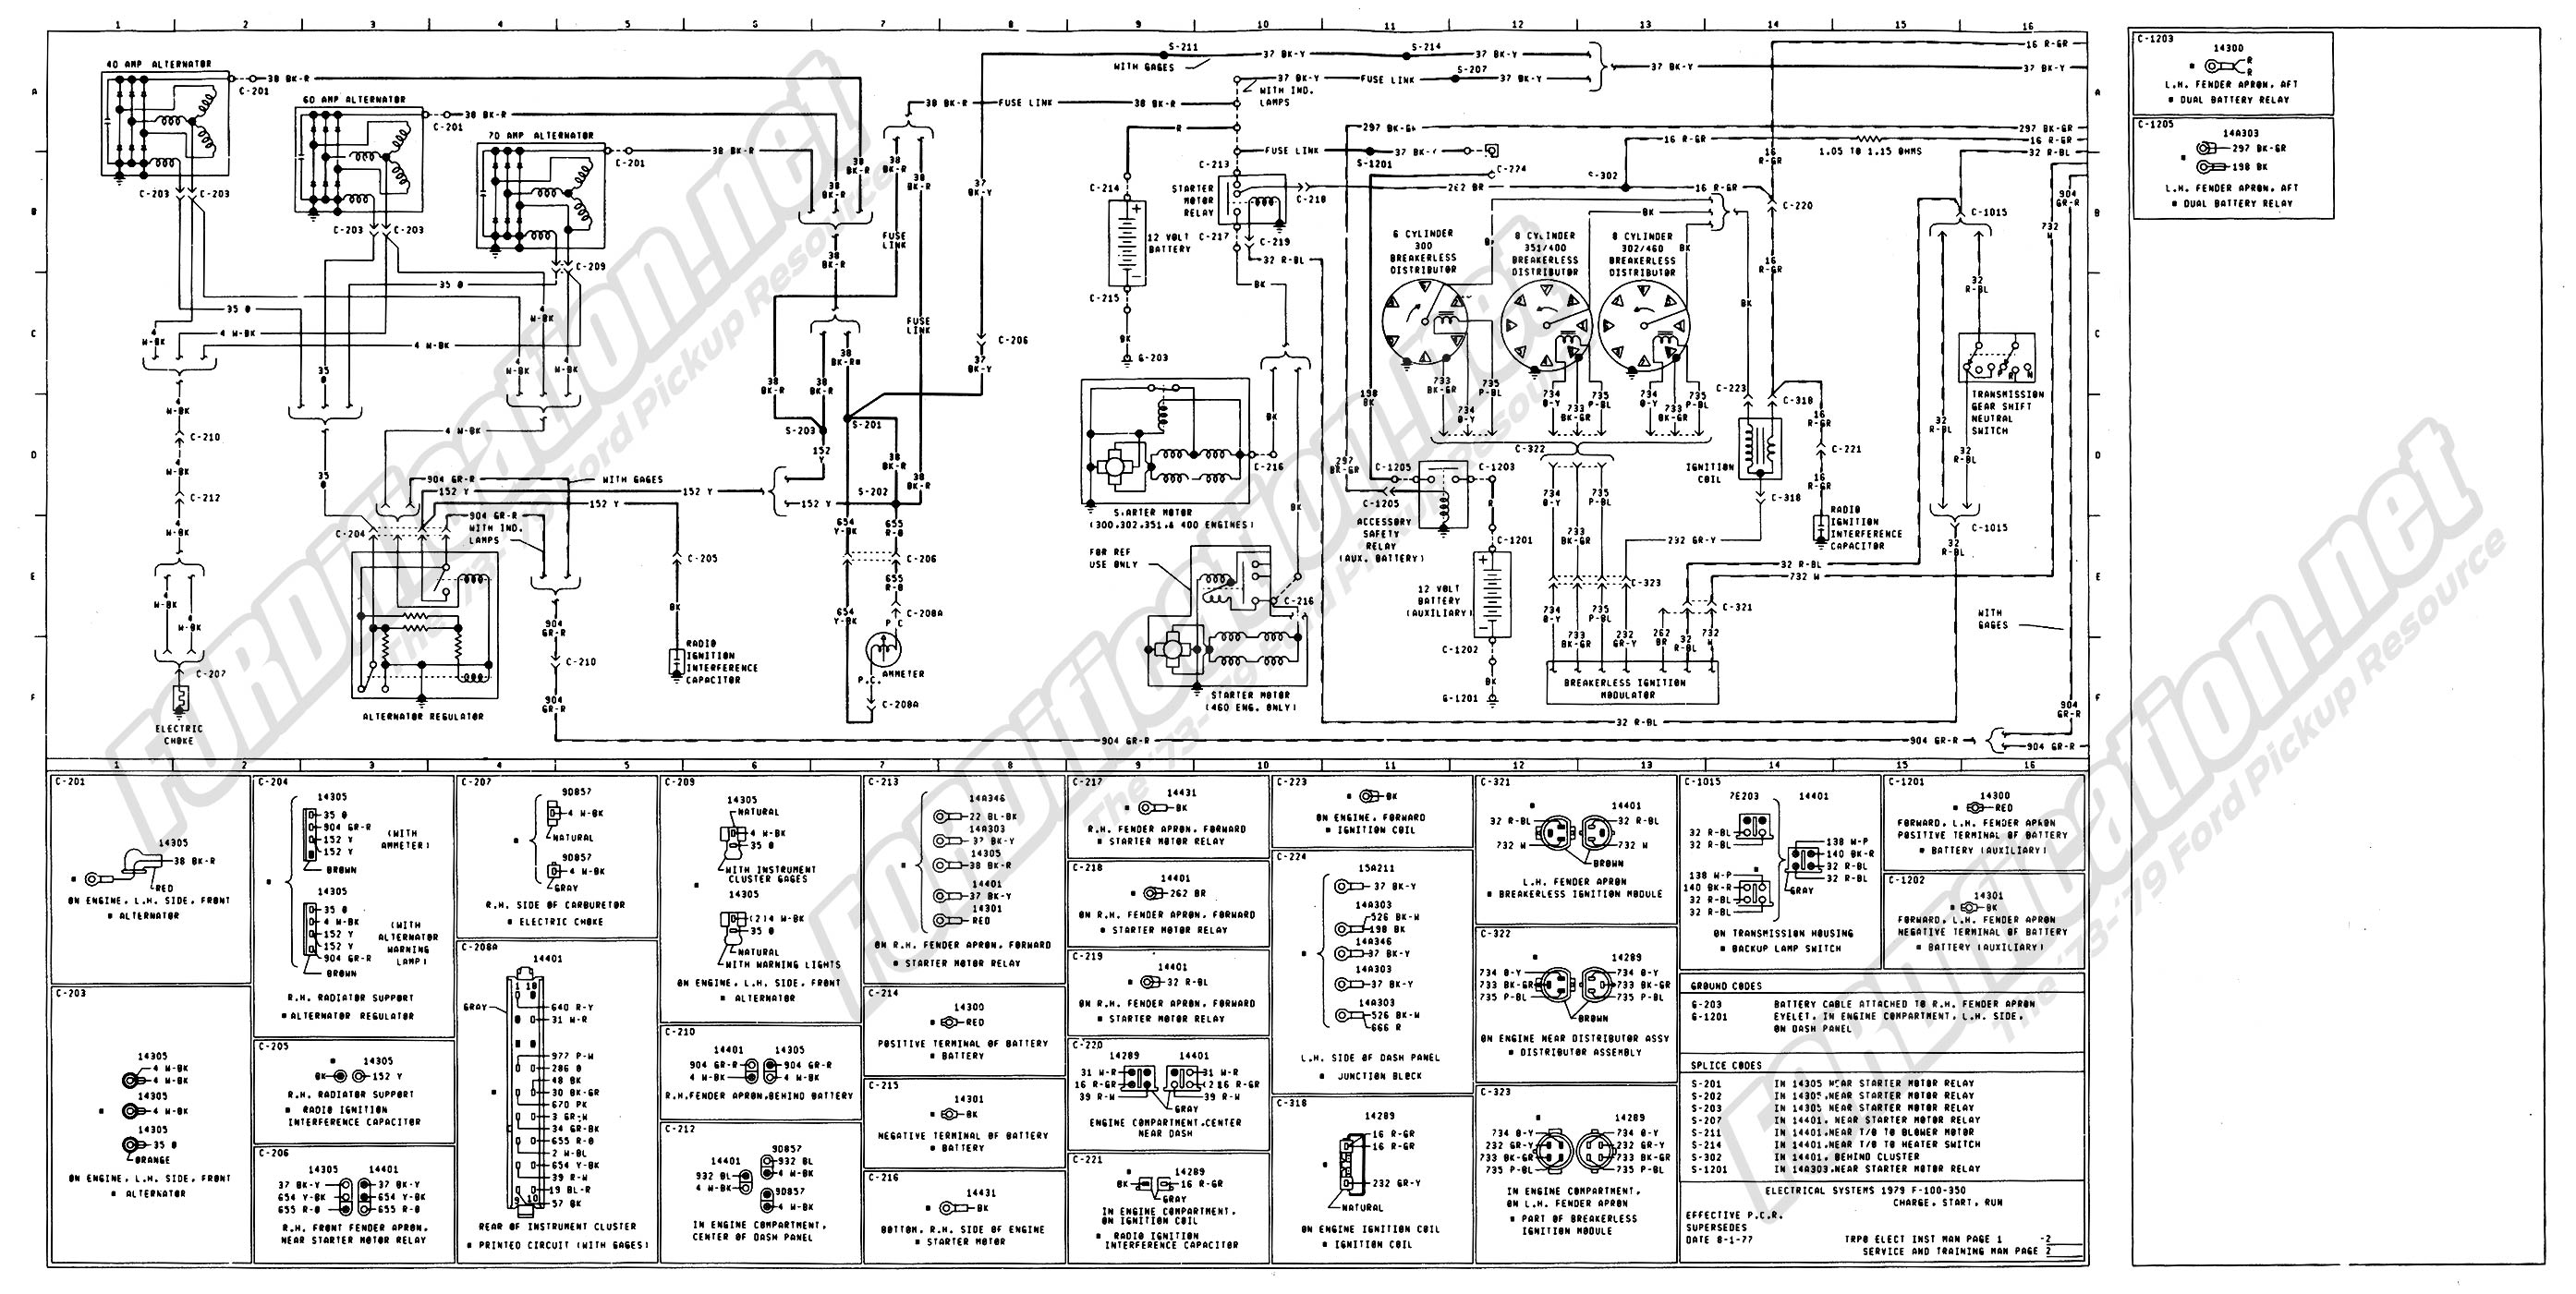 2016 ford f150 speaker wiring diagram mallory distributor 1973 1979 truck diagrams schematics fordification net